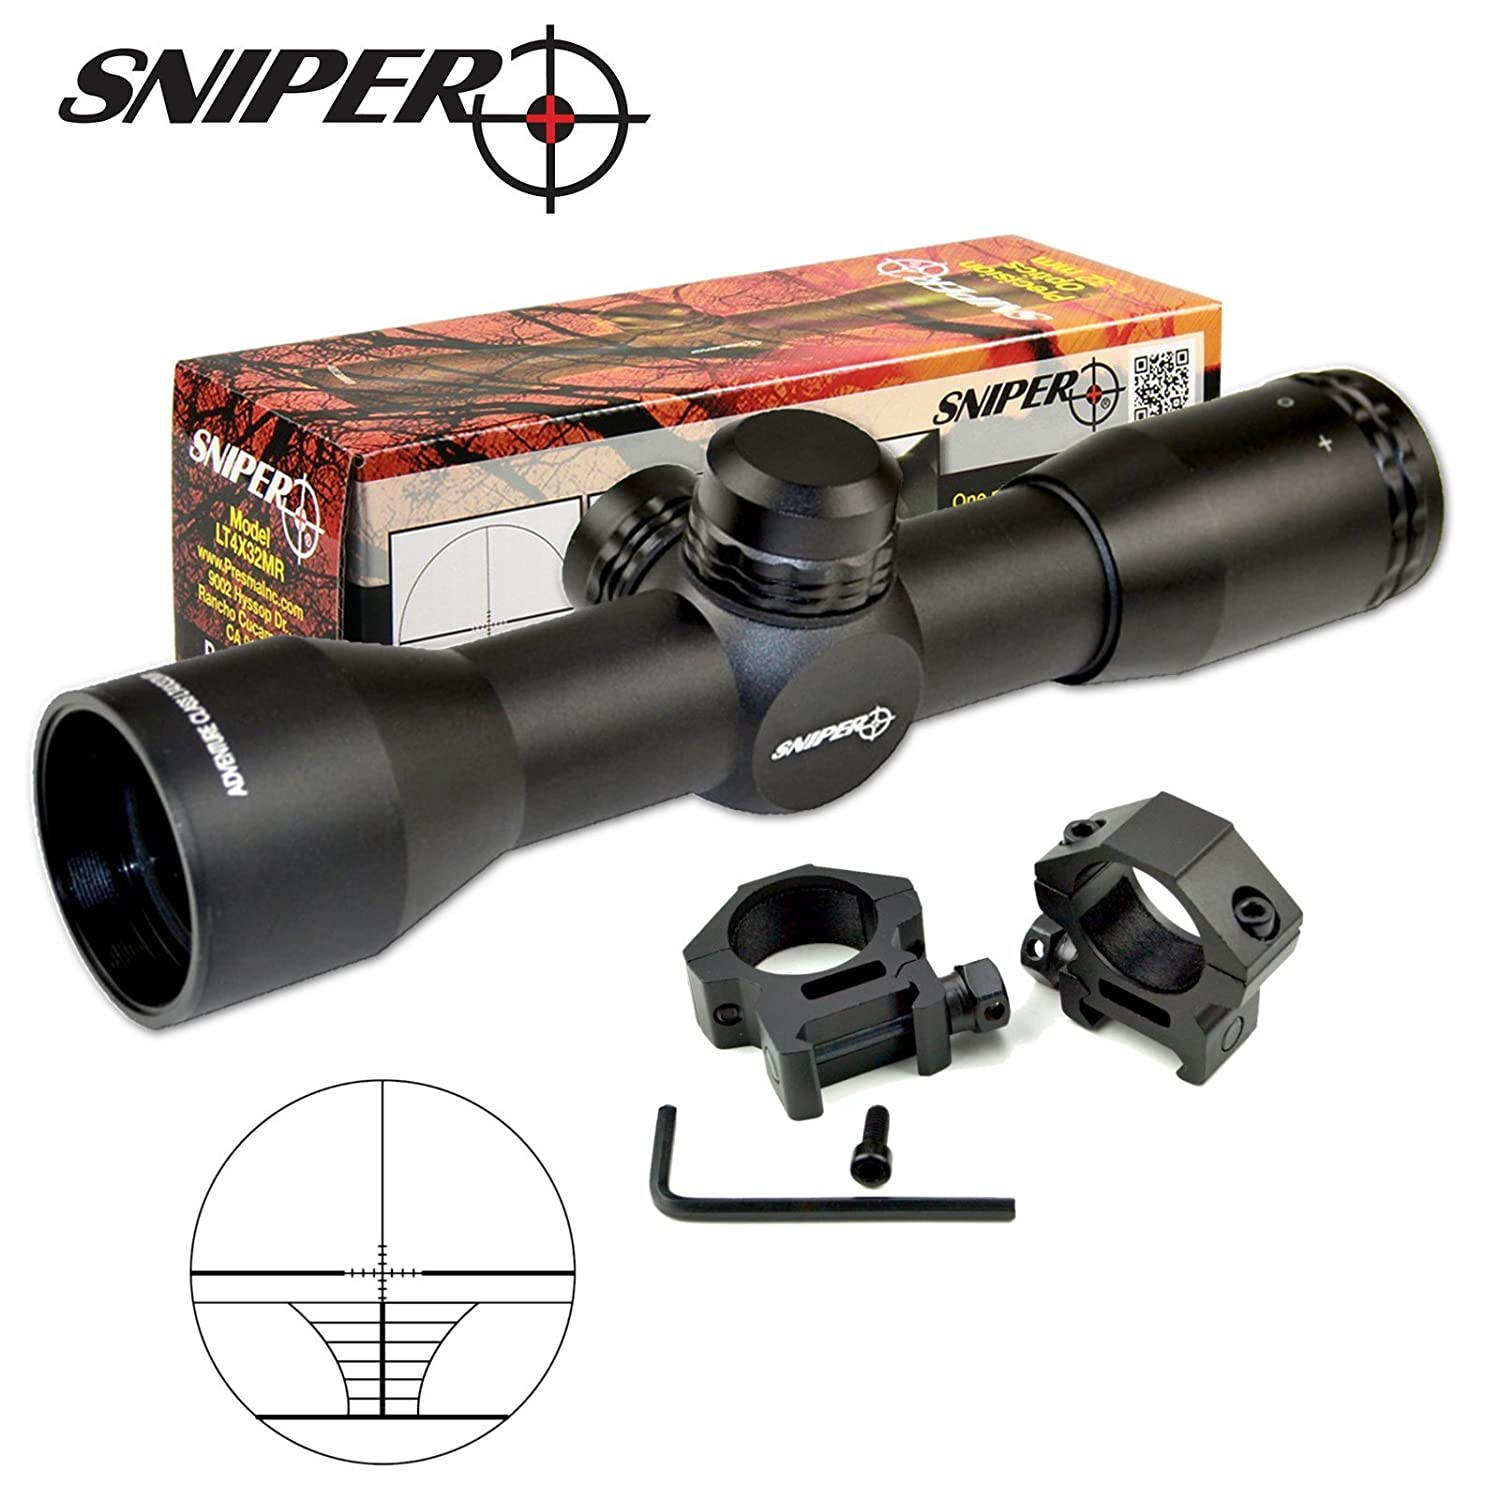 SNIPER Compact Rifle Scope 4x32 with Ring, Hunting Scope LT4X32M